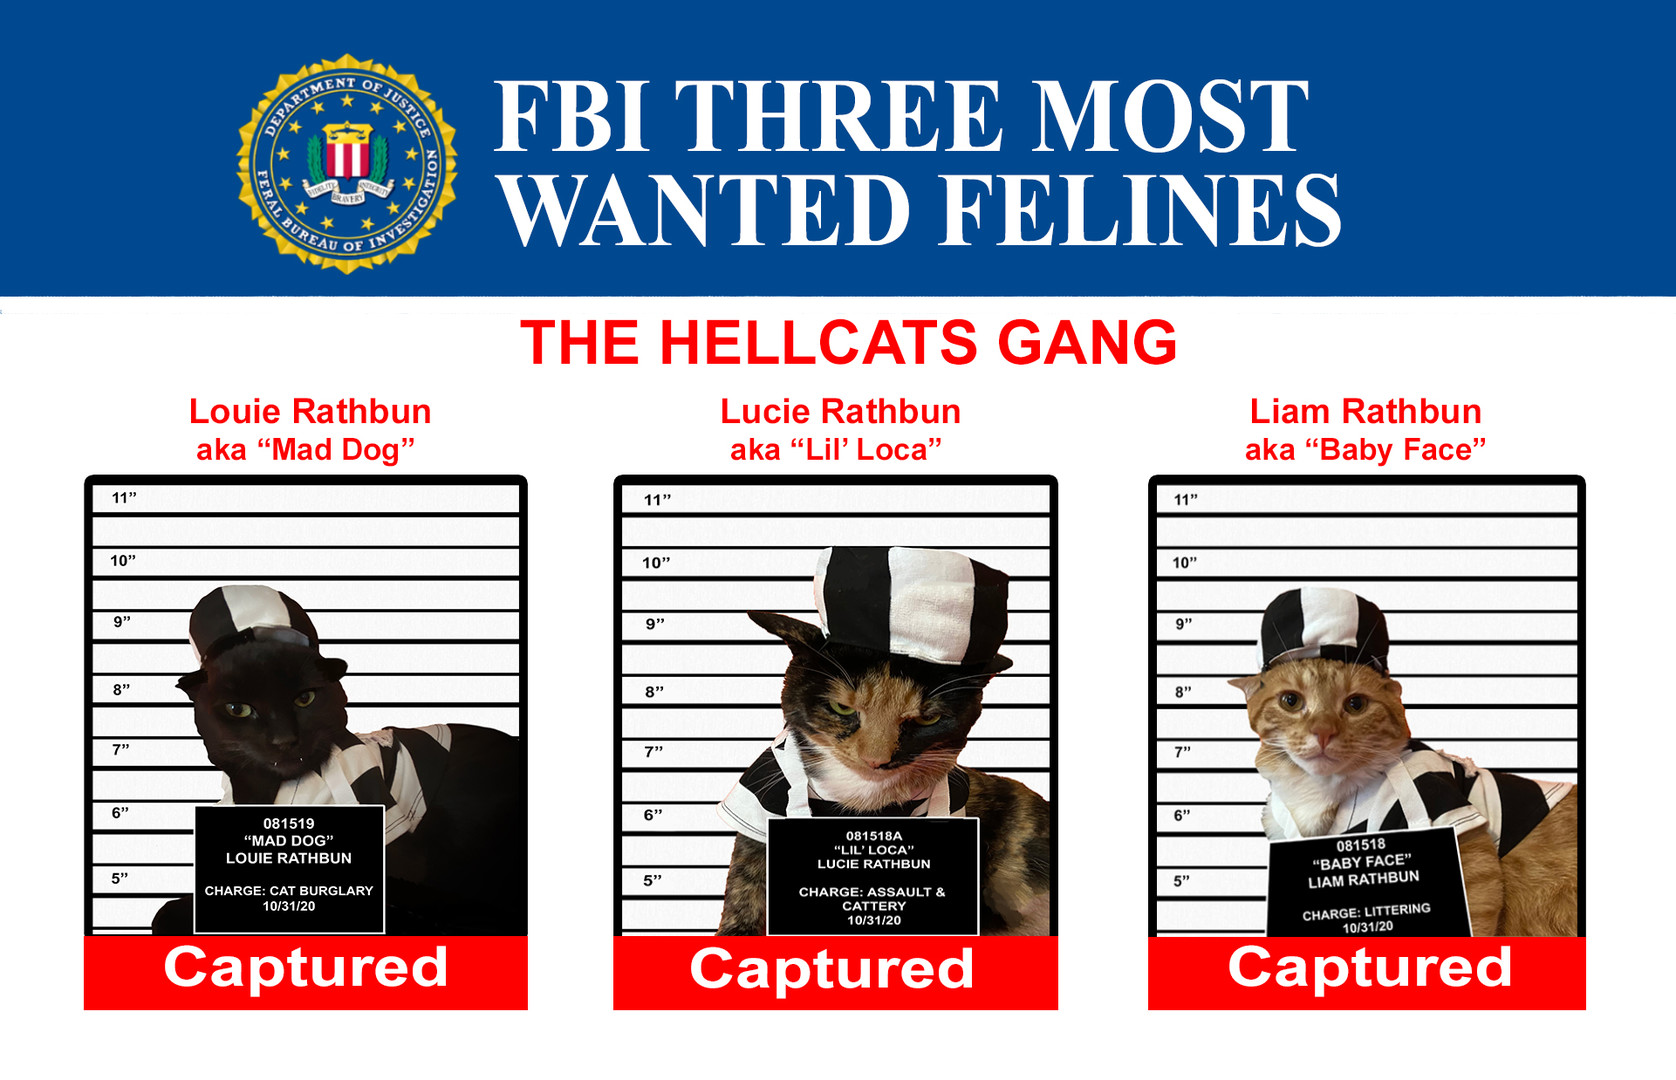 FBI Most Wanted Felines